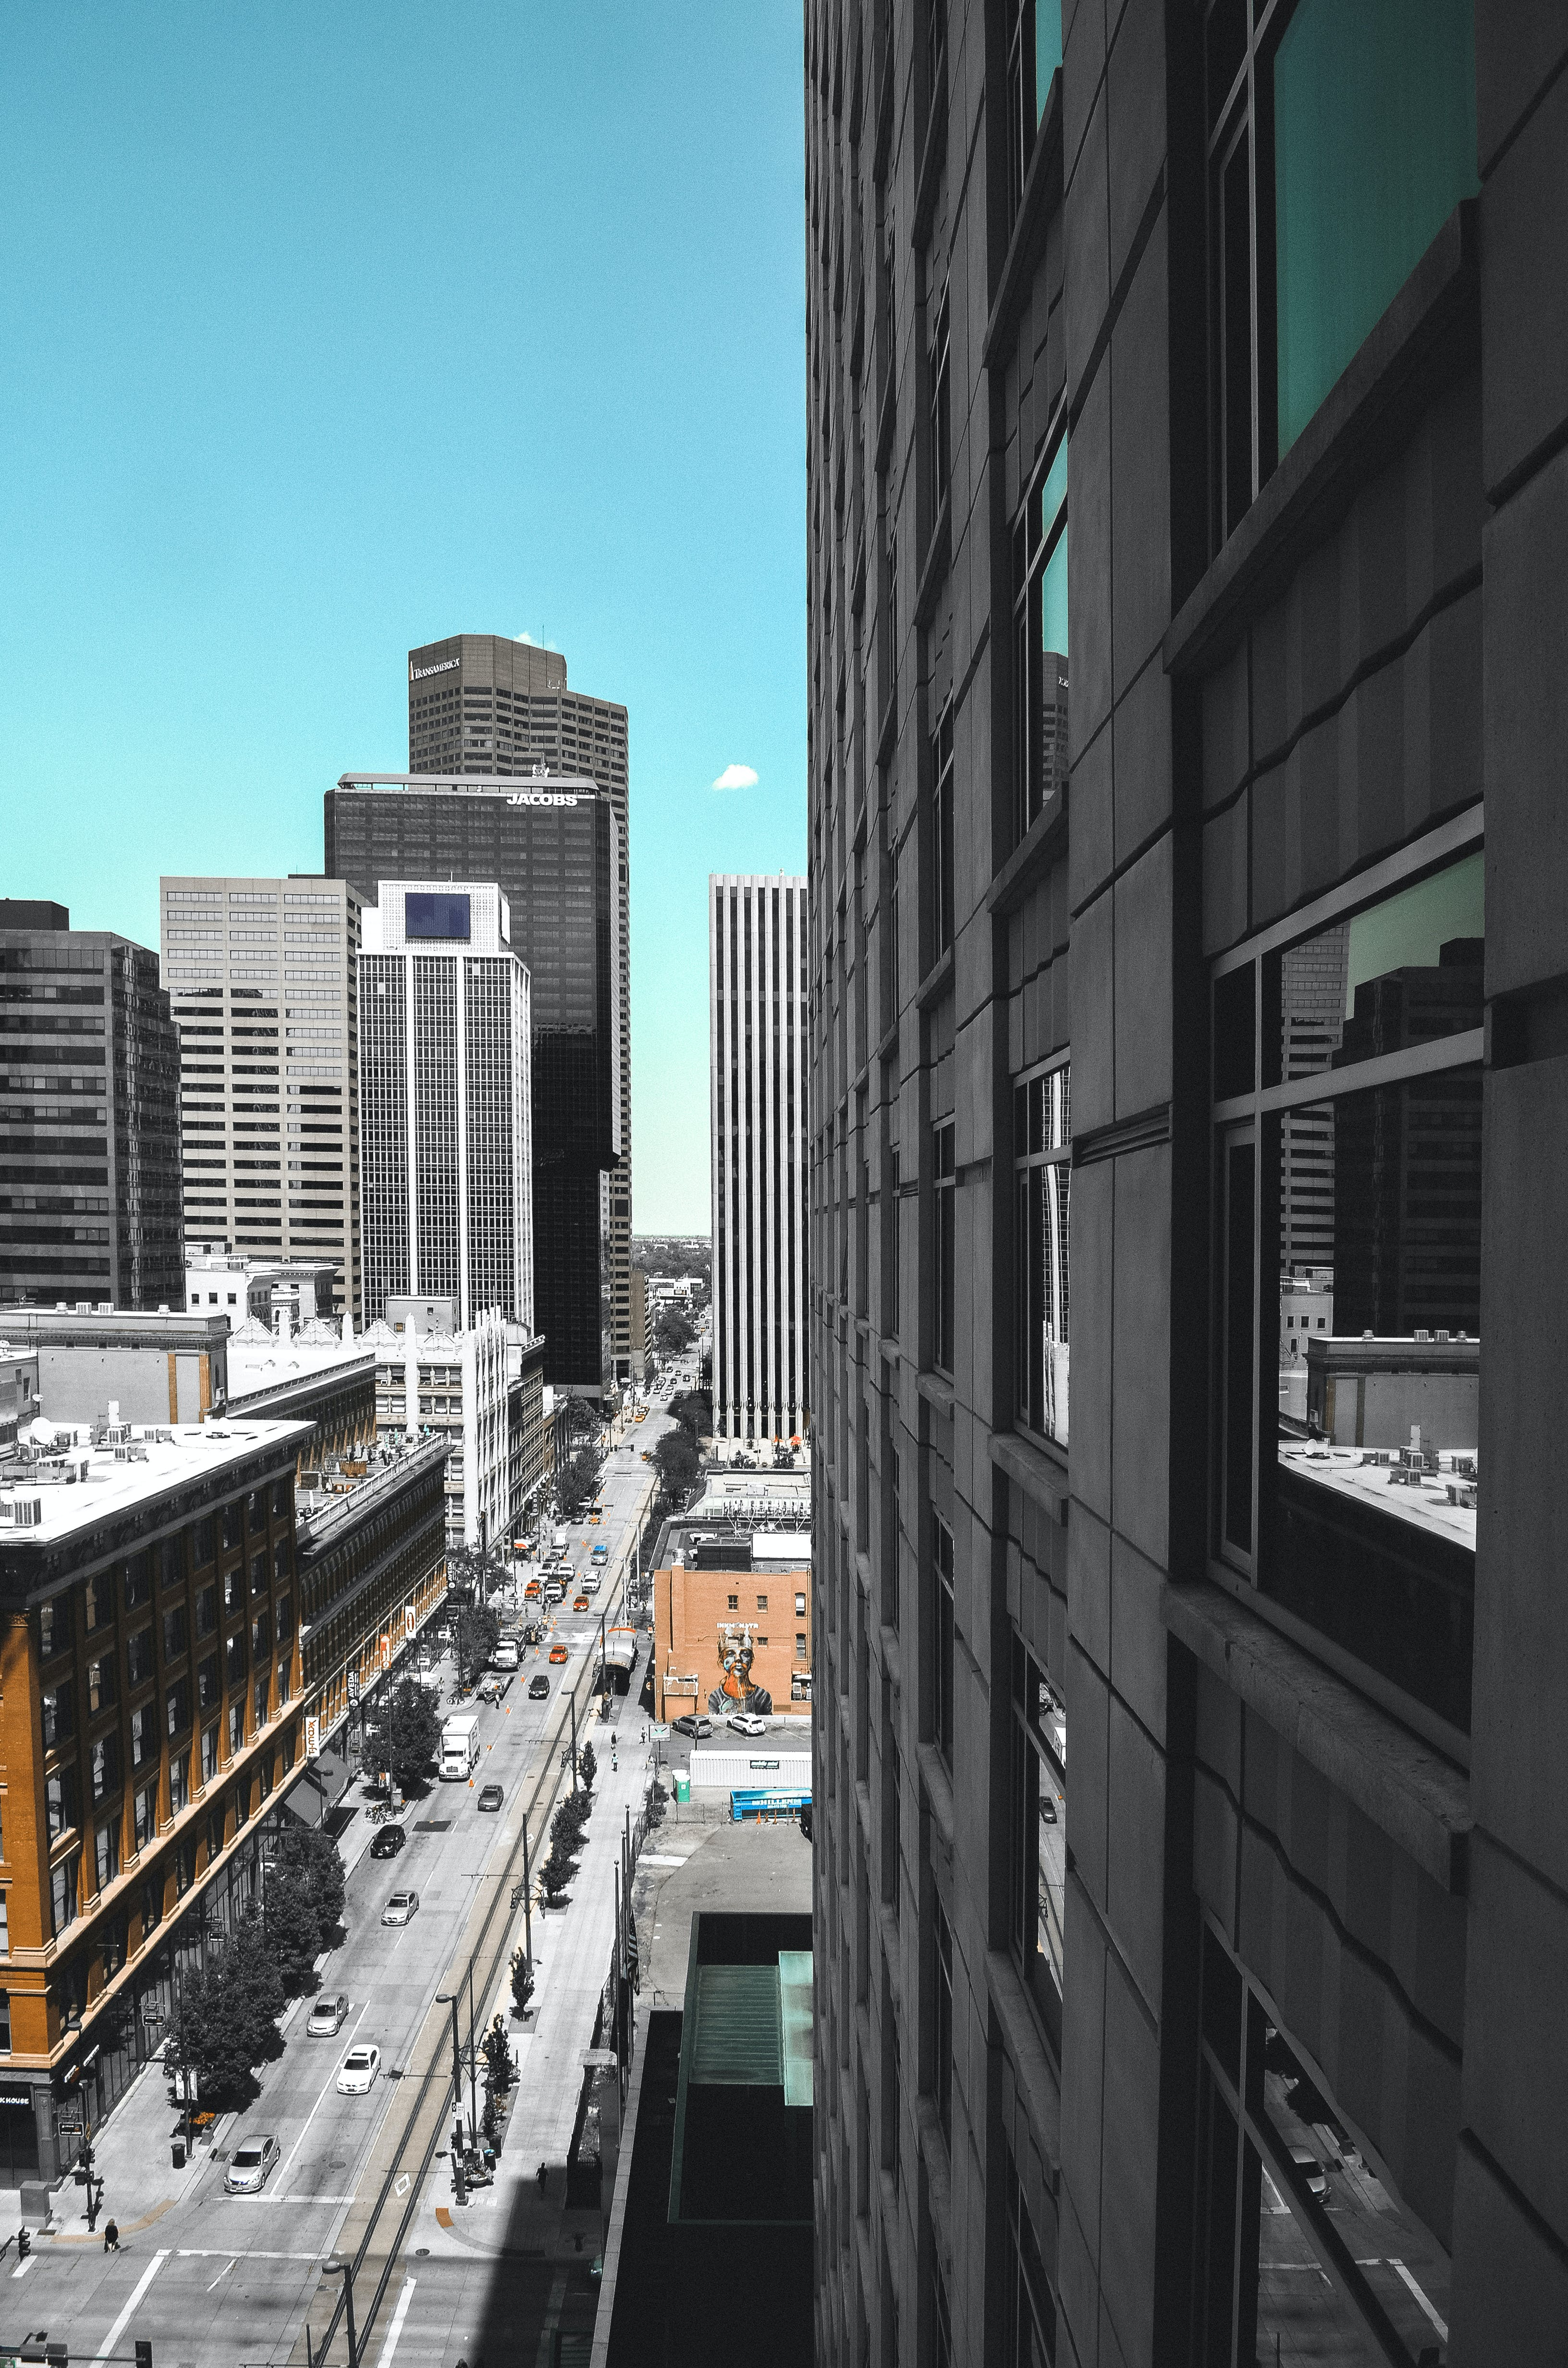 Photo of Buildings in the City